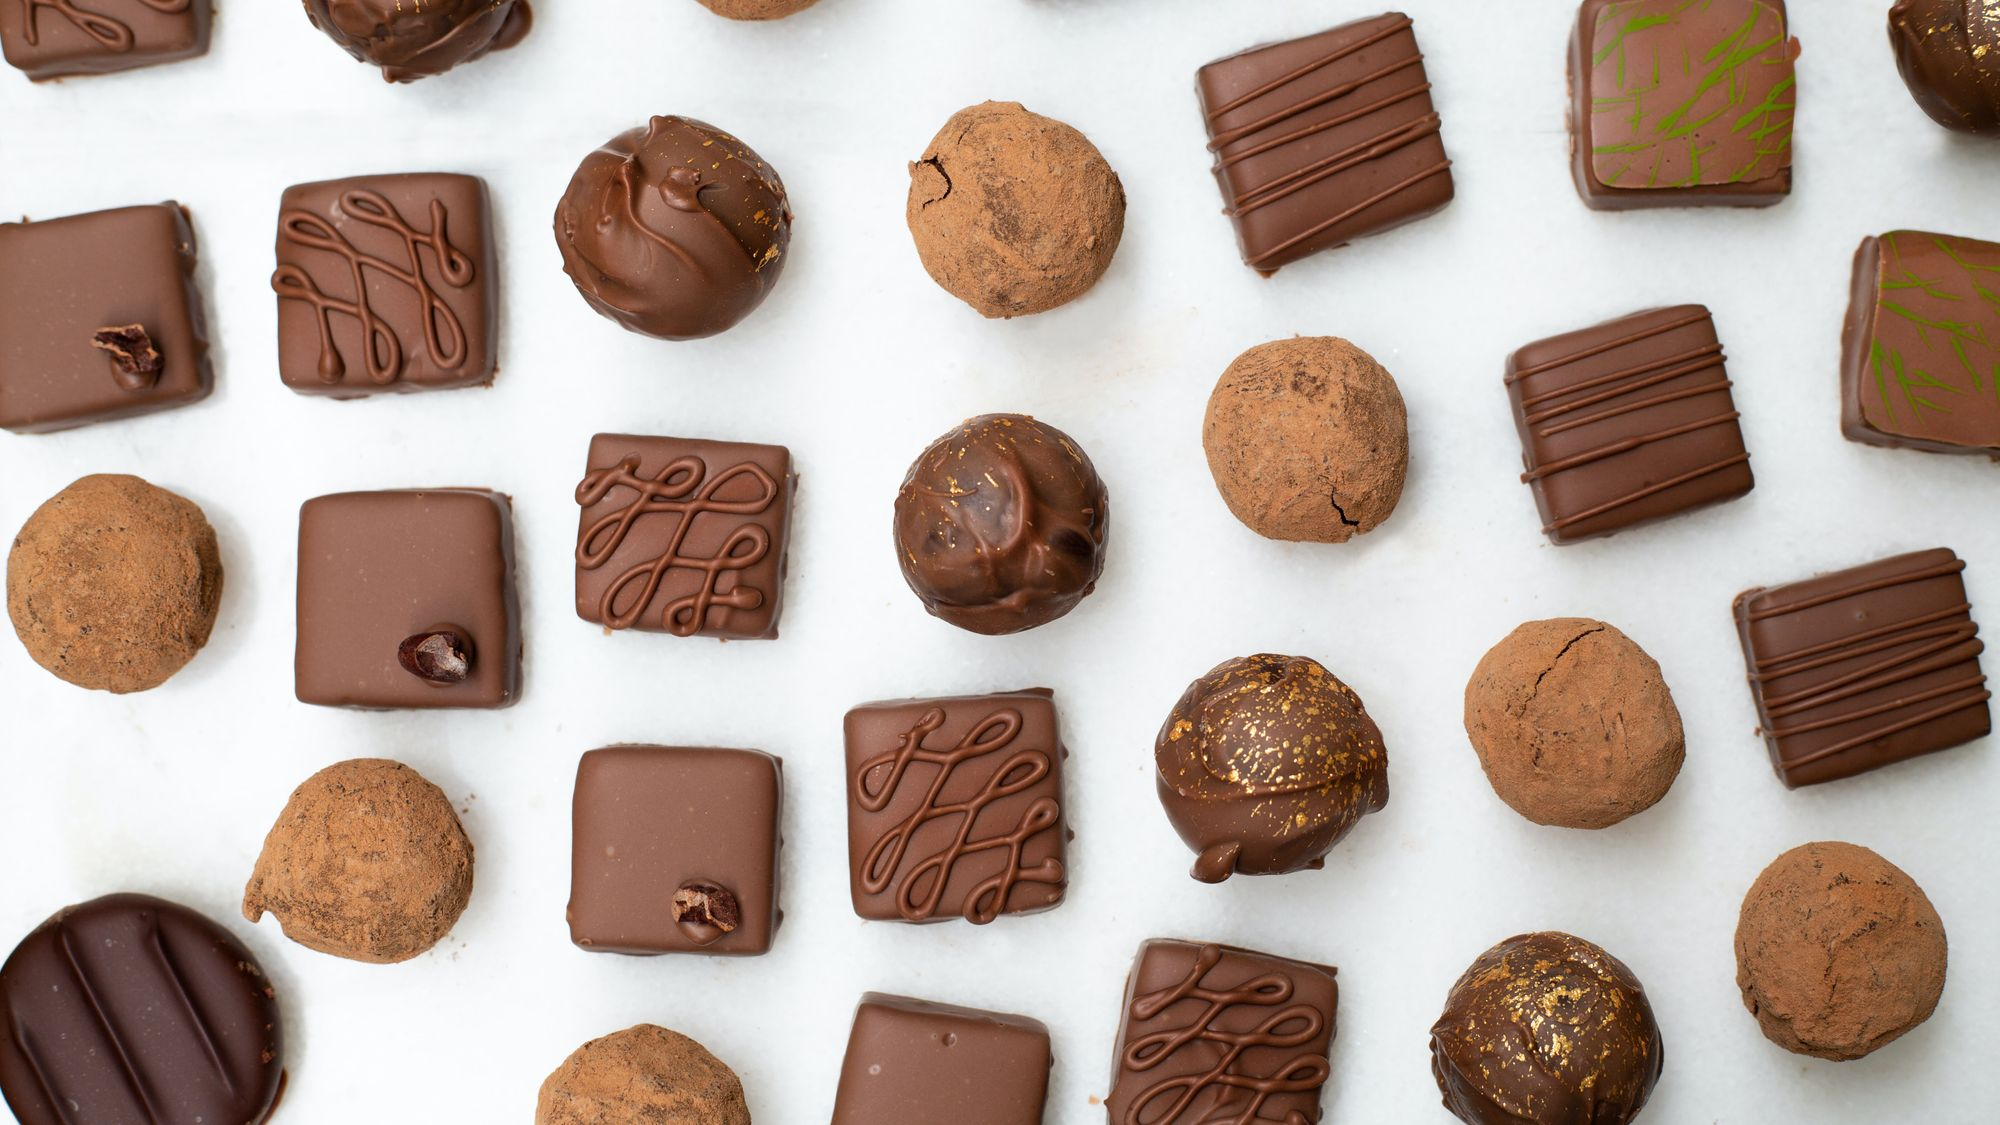 Eating chocolate is one the best remedies to beat Blue Monday